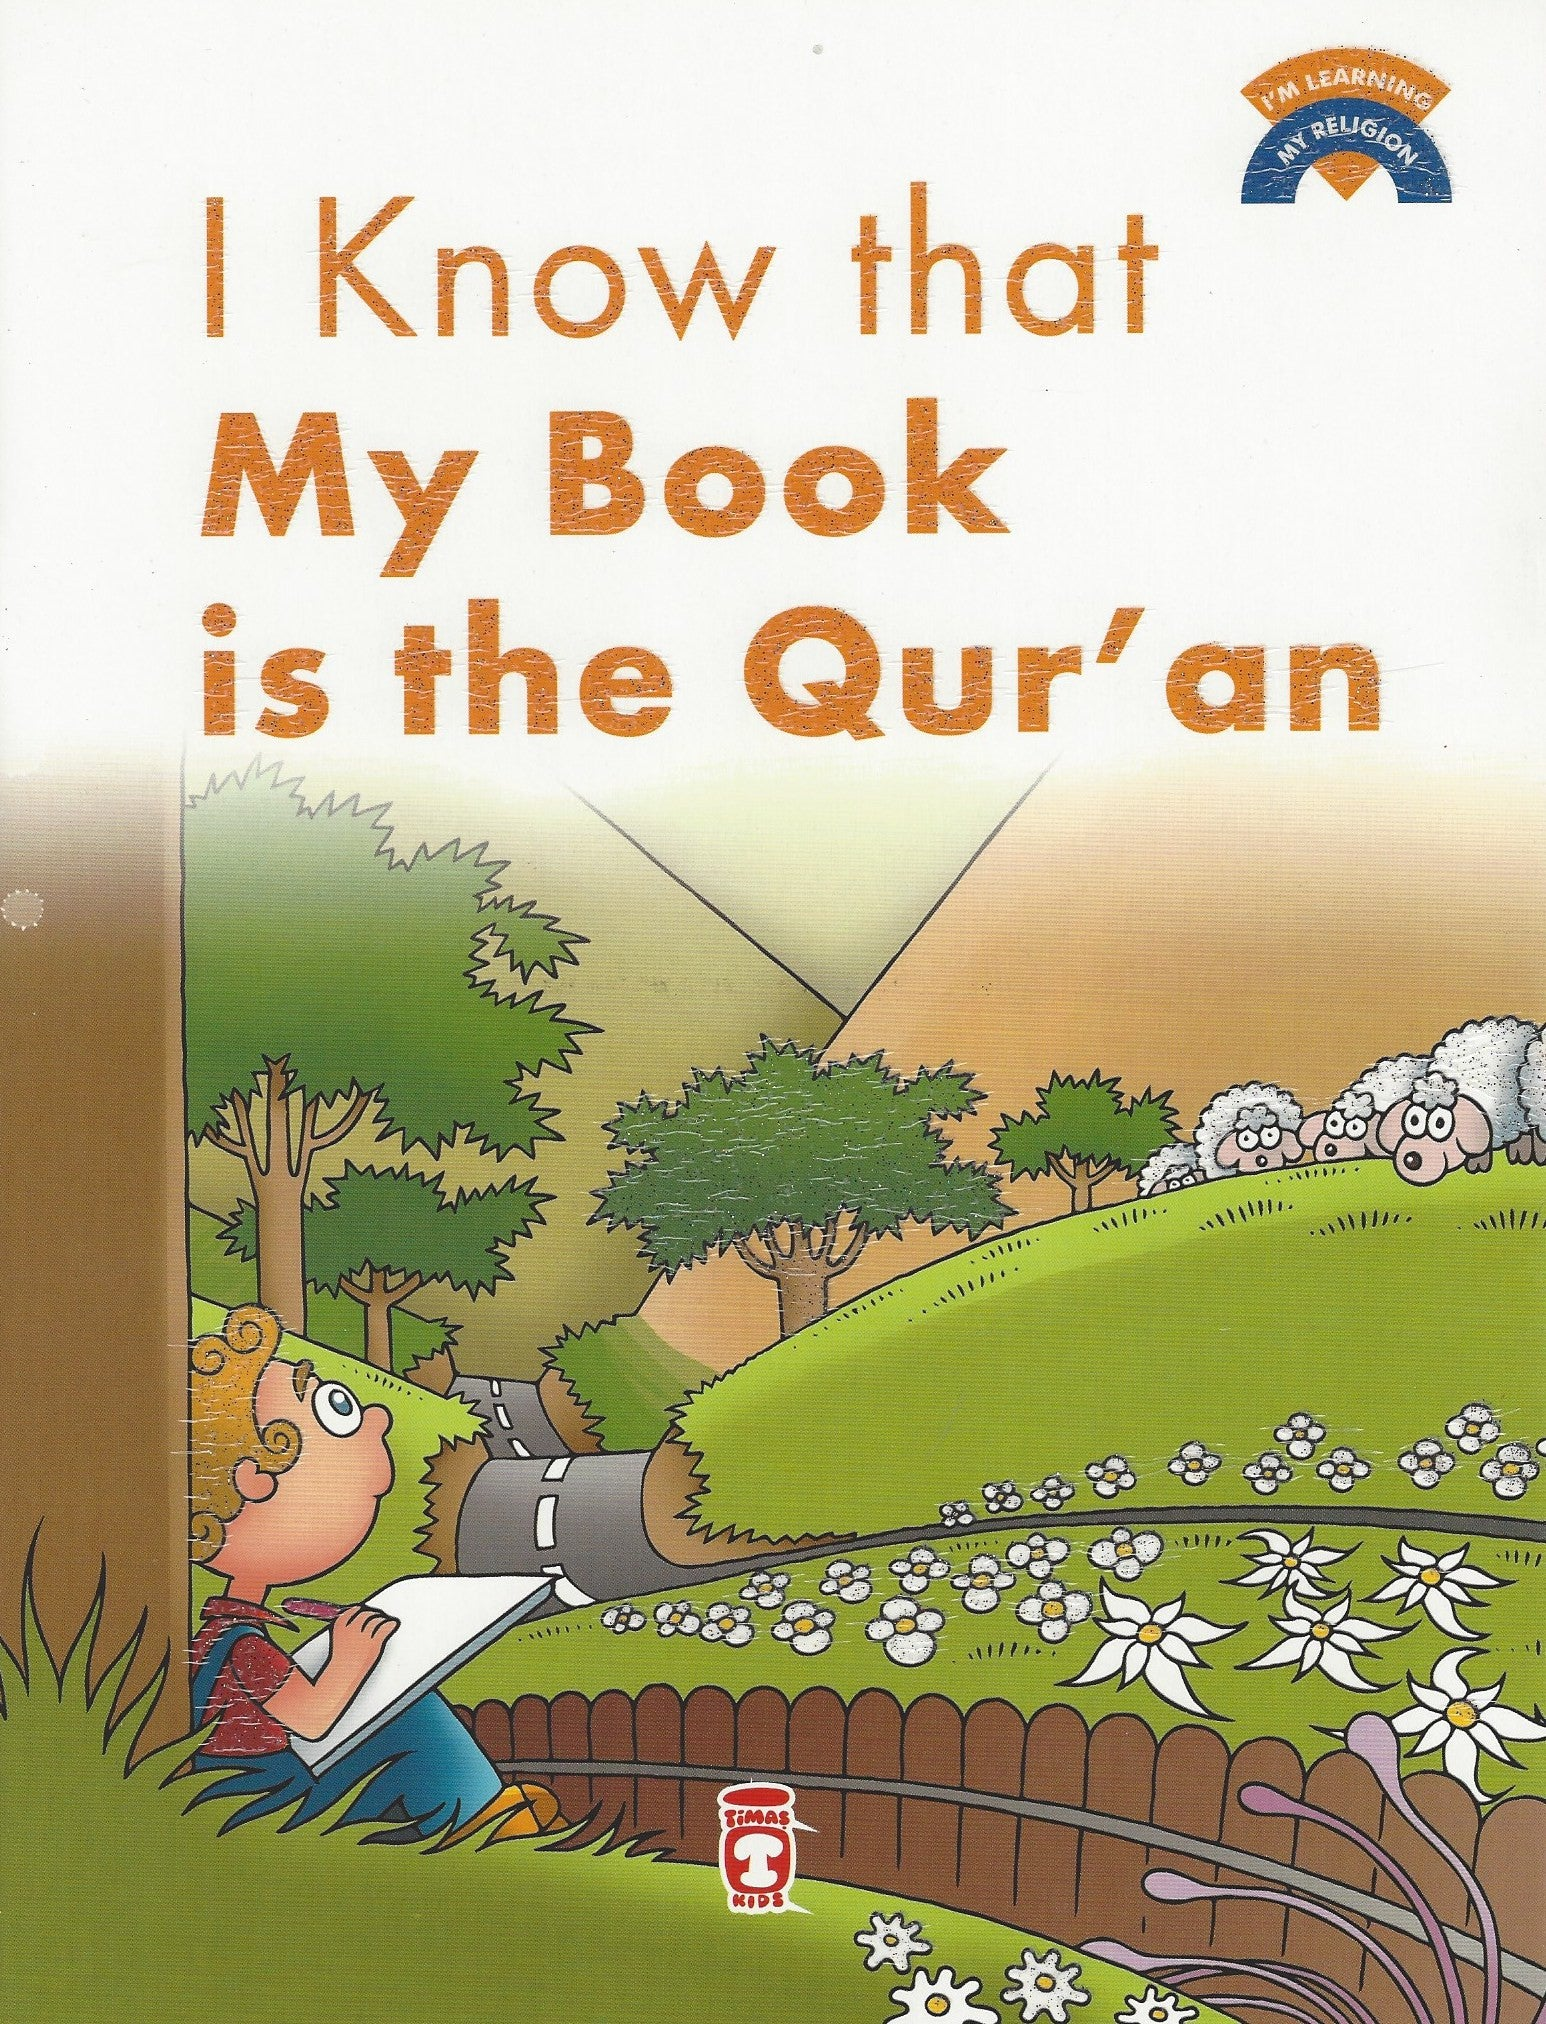 I'm Learning My Religion (10 volume set) I Know that My Book is the Qur'an, Book - Daybreak International Bookstore, Daybreak Press Global Bookshop  - 9